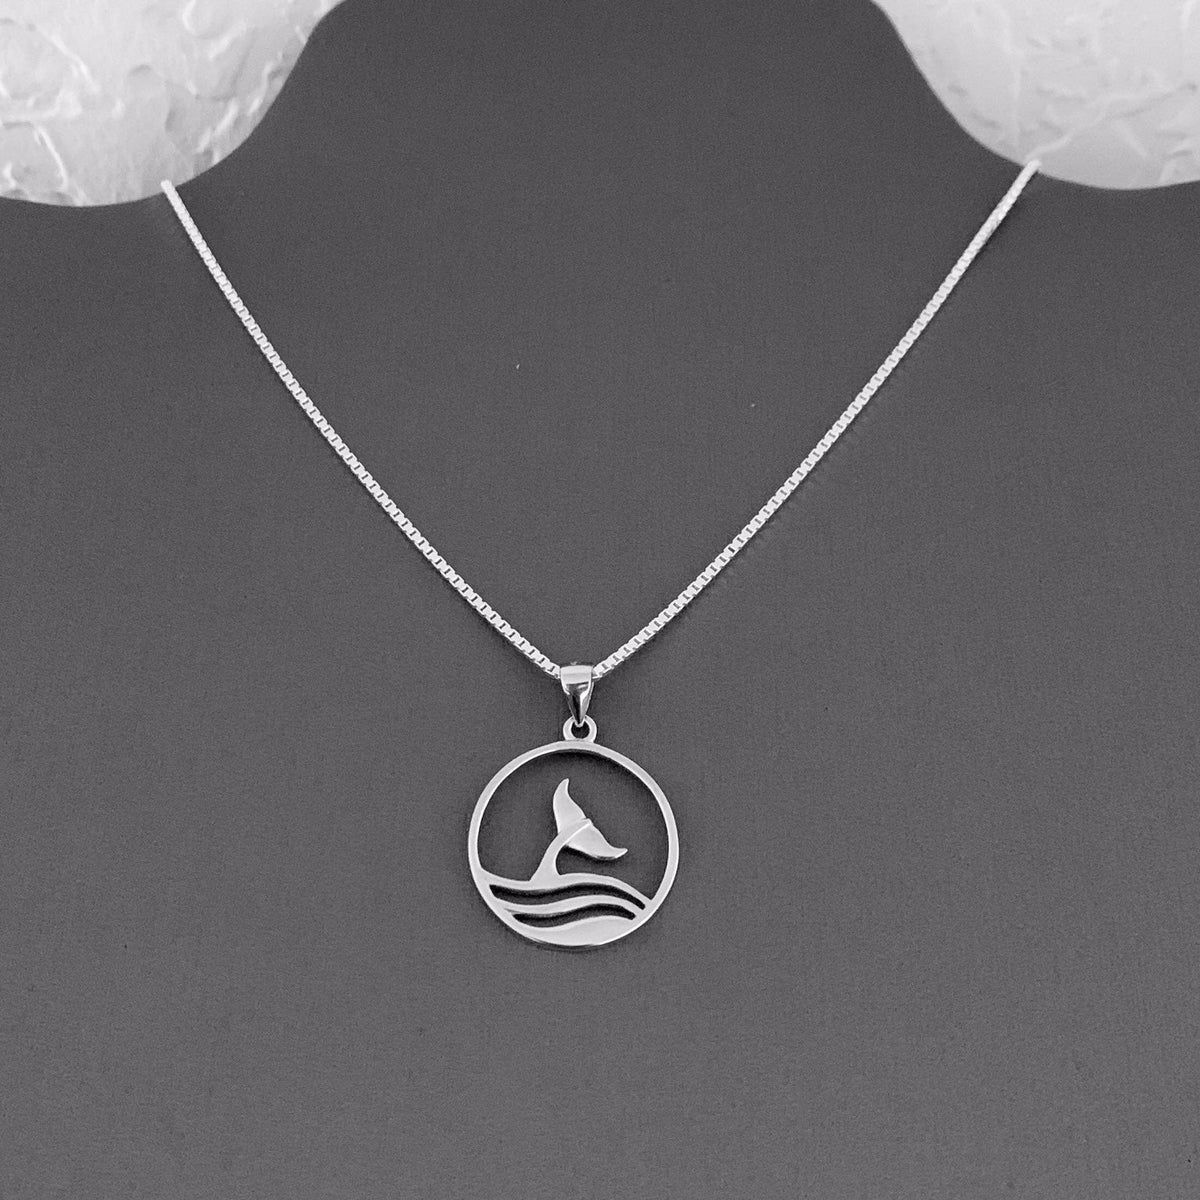 Whale charm pendant solid Sterling Silver new with or without a chain.